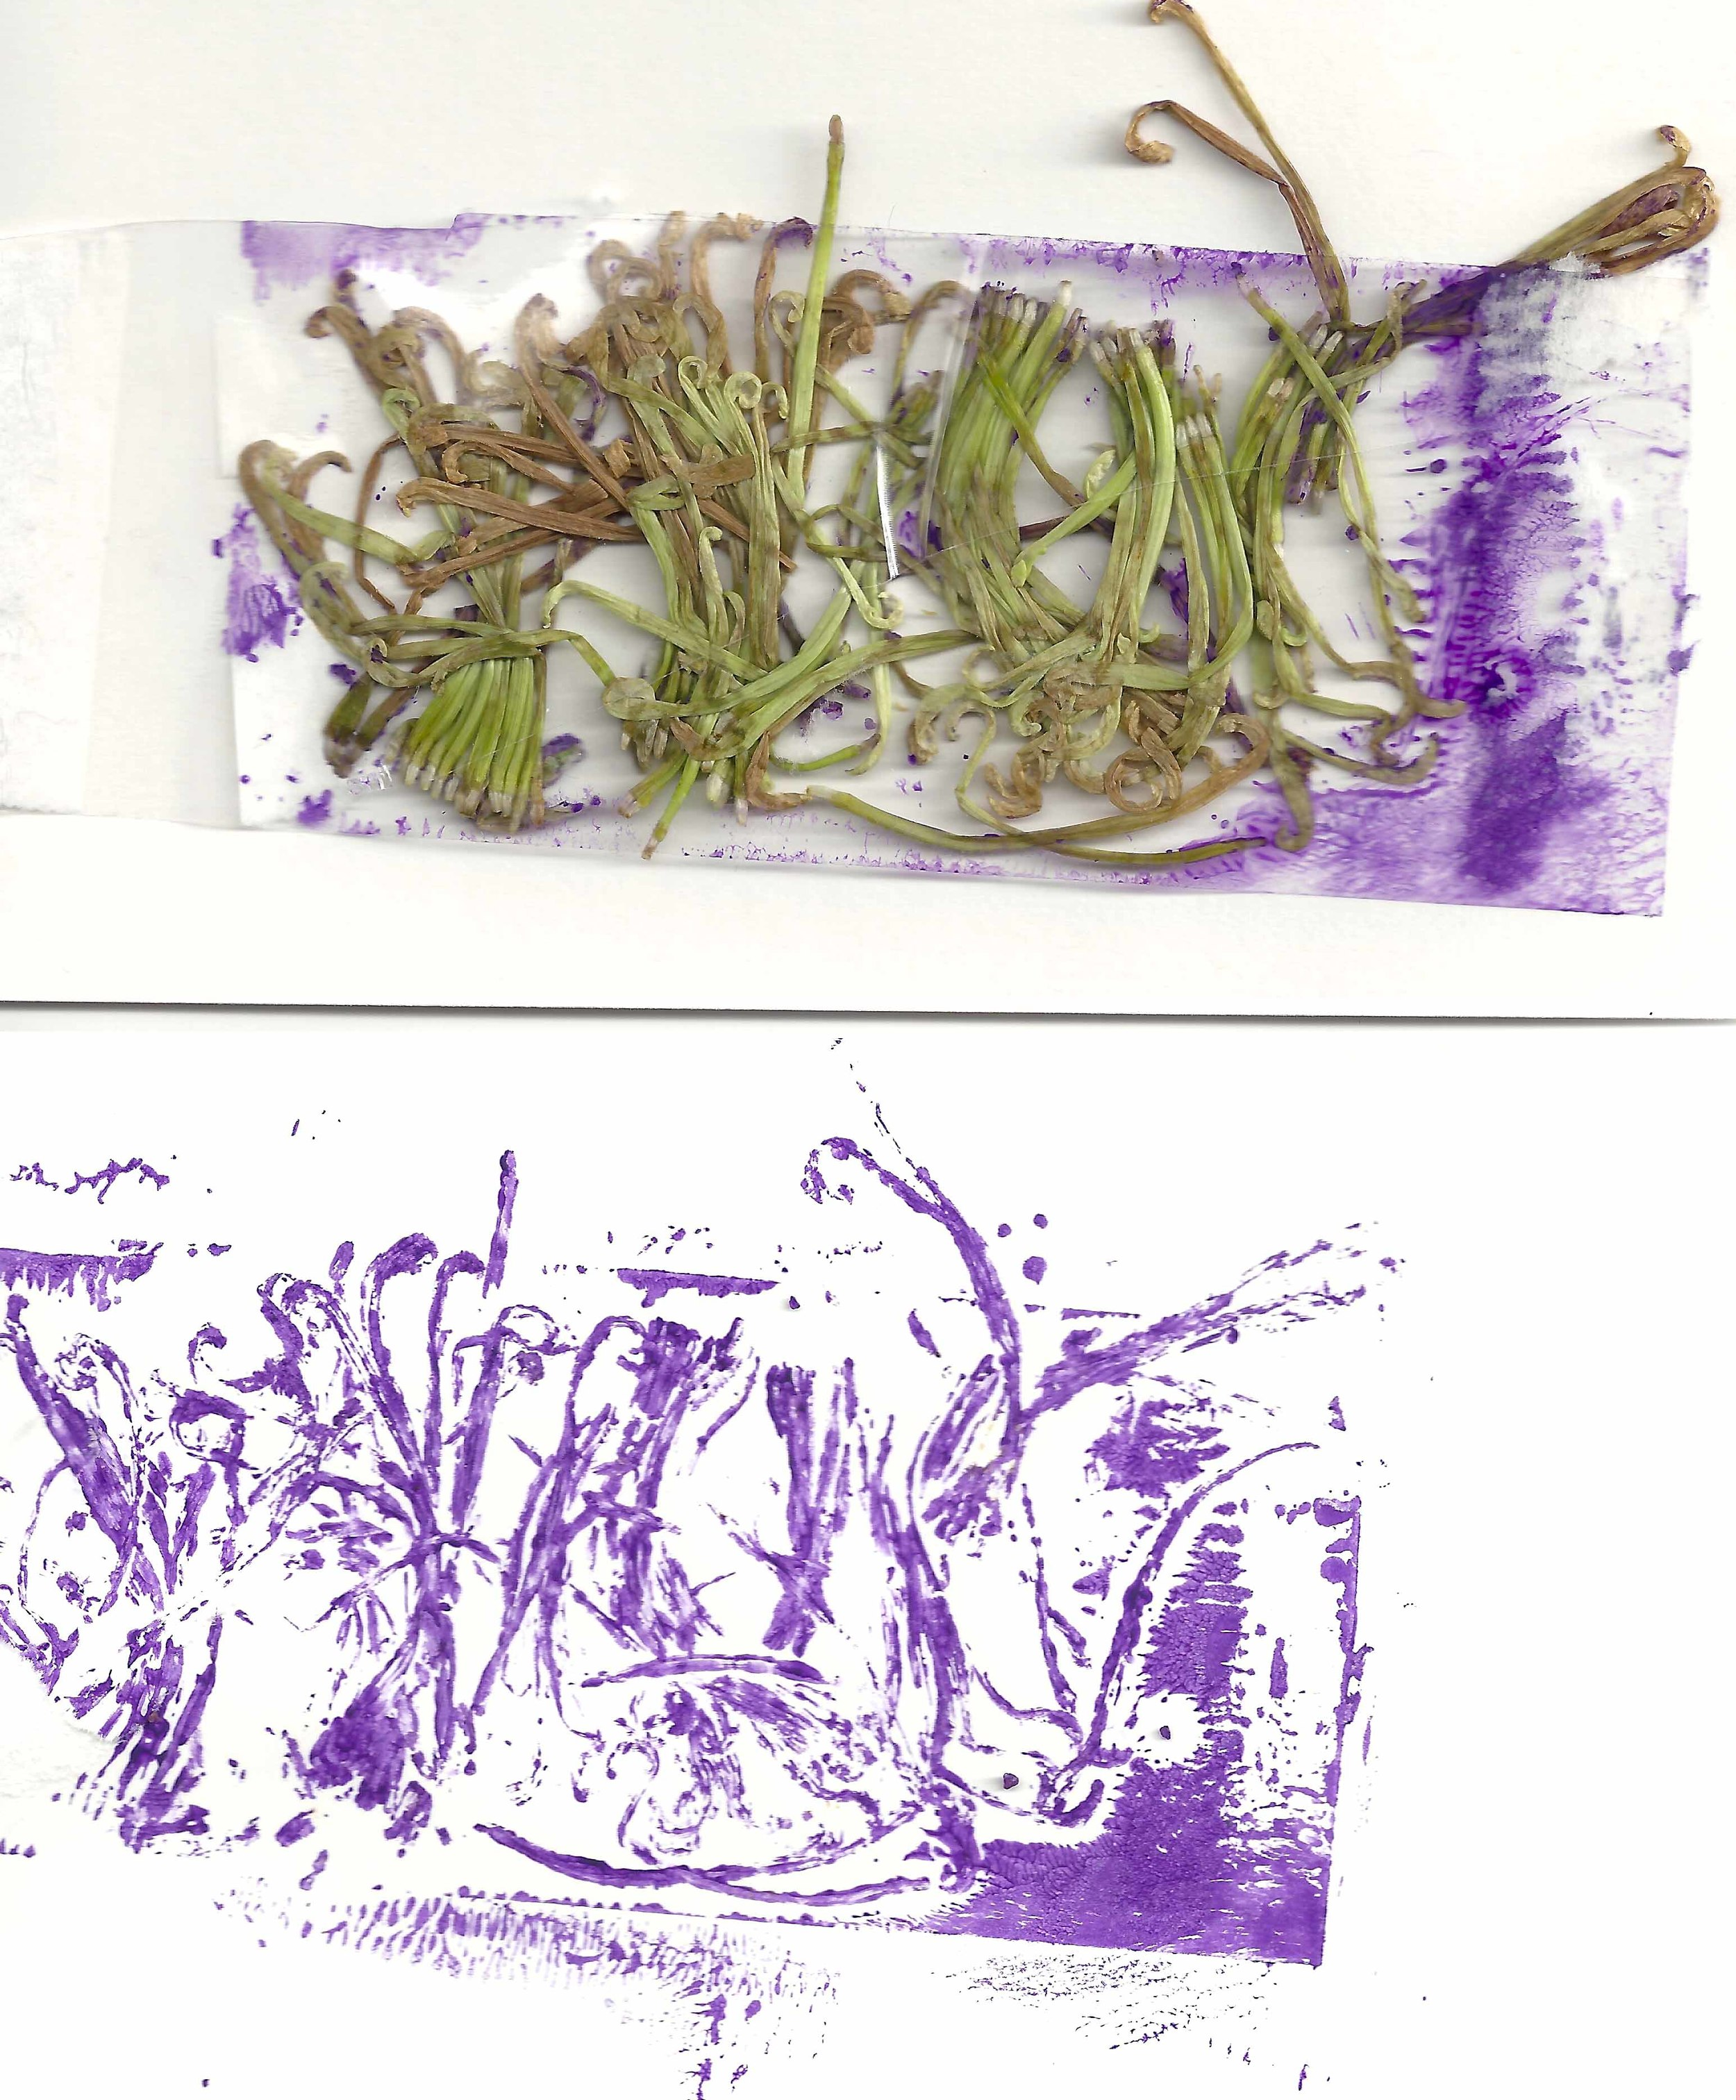 Petals from flowers I killed: I placed the petals onto some packing tape and used my brayer to roll it with paint and transfer it to paper. Then I scanned it in.